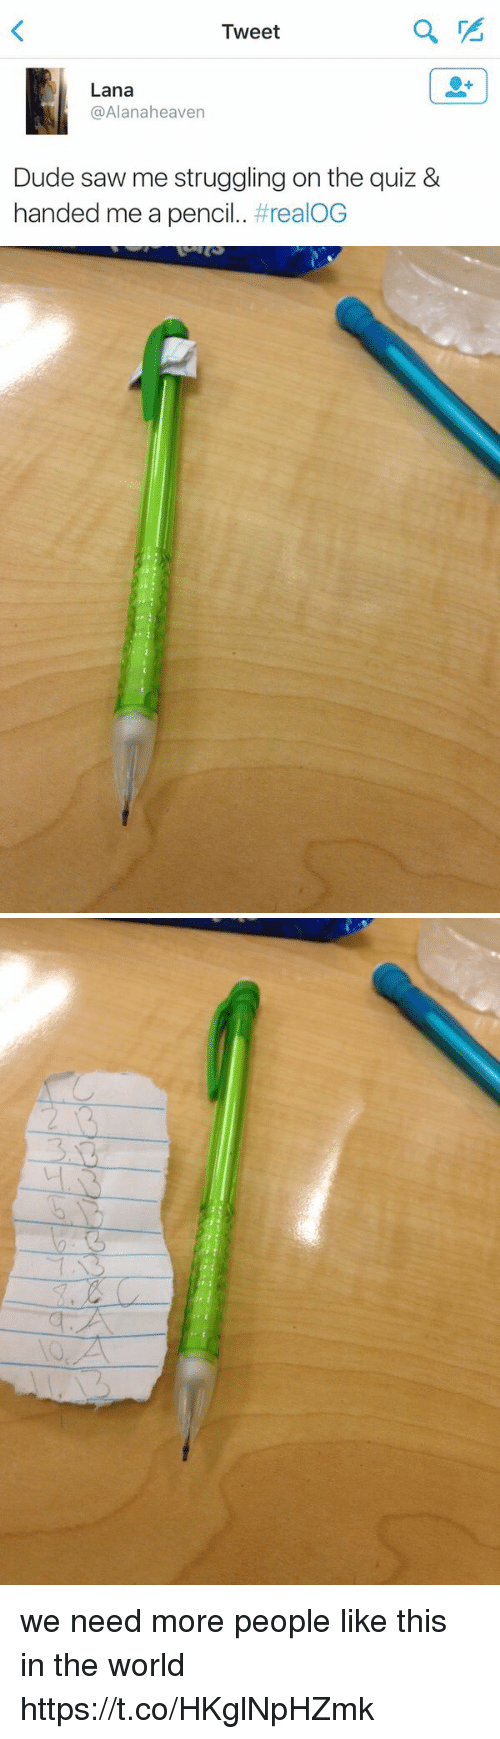 Dude, Saw, and Quiz: Tweet  Lana  @Alanaheaven  Dude saw me struggling on the quiz &  handed me a pencil. we need more people like this in the world https://t.co/HKglNpHZmk